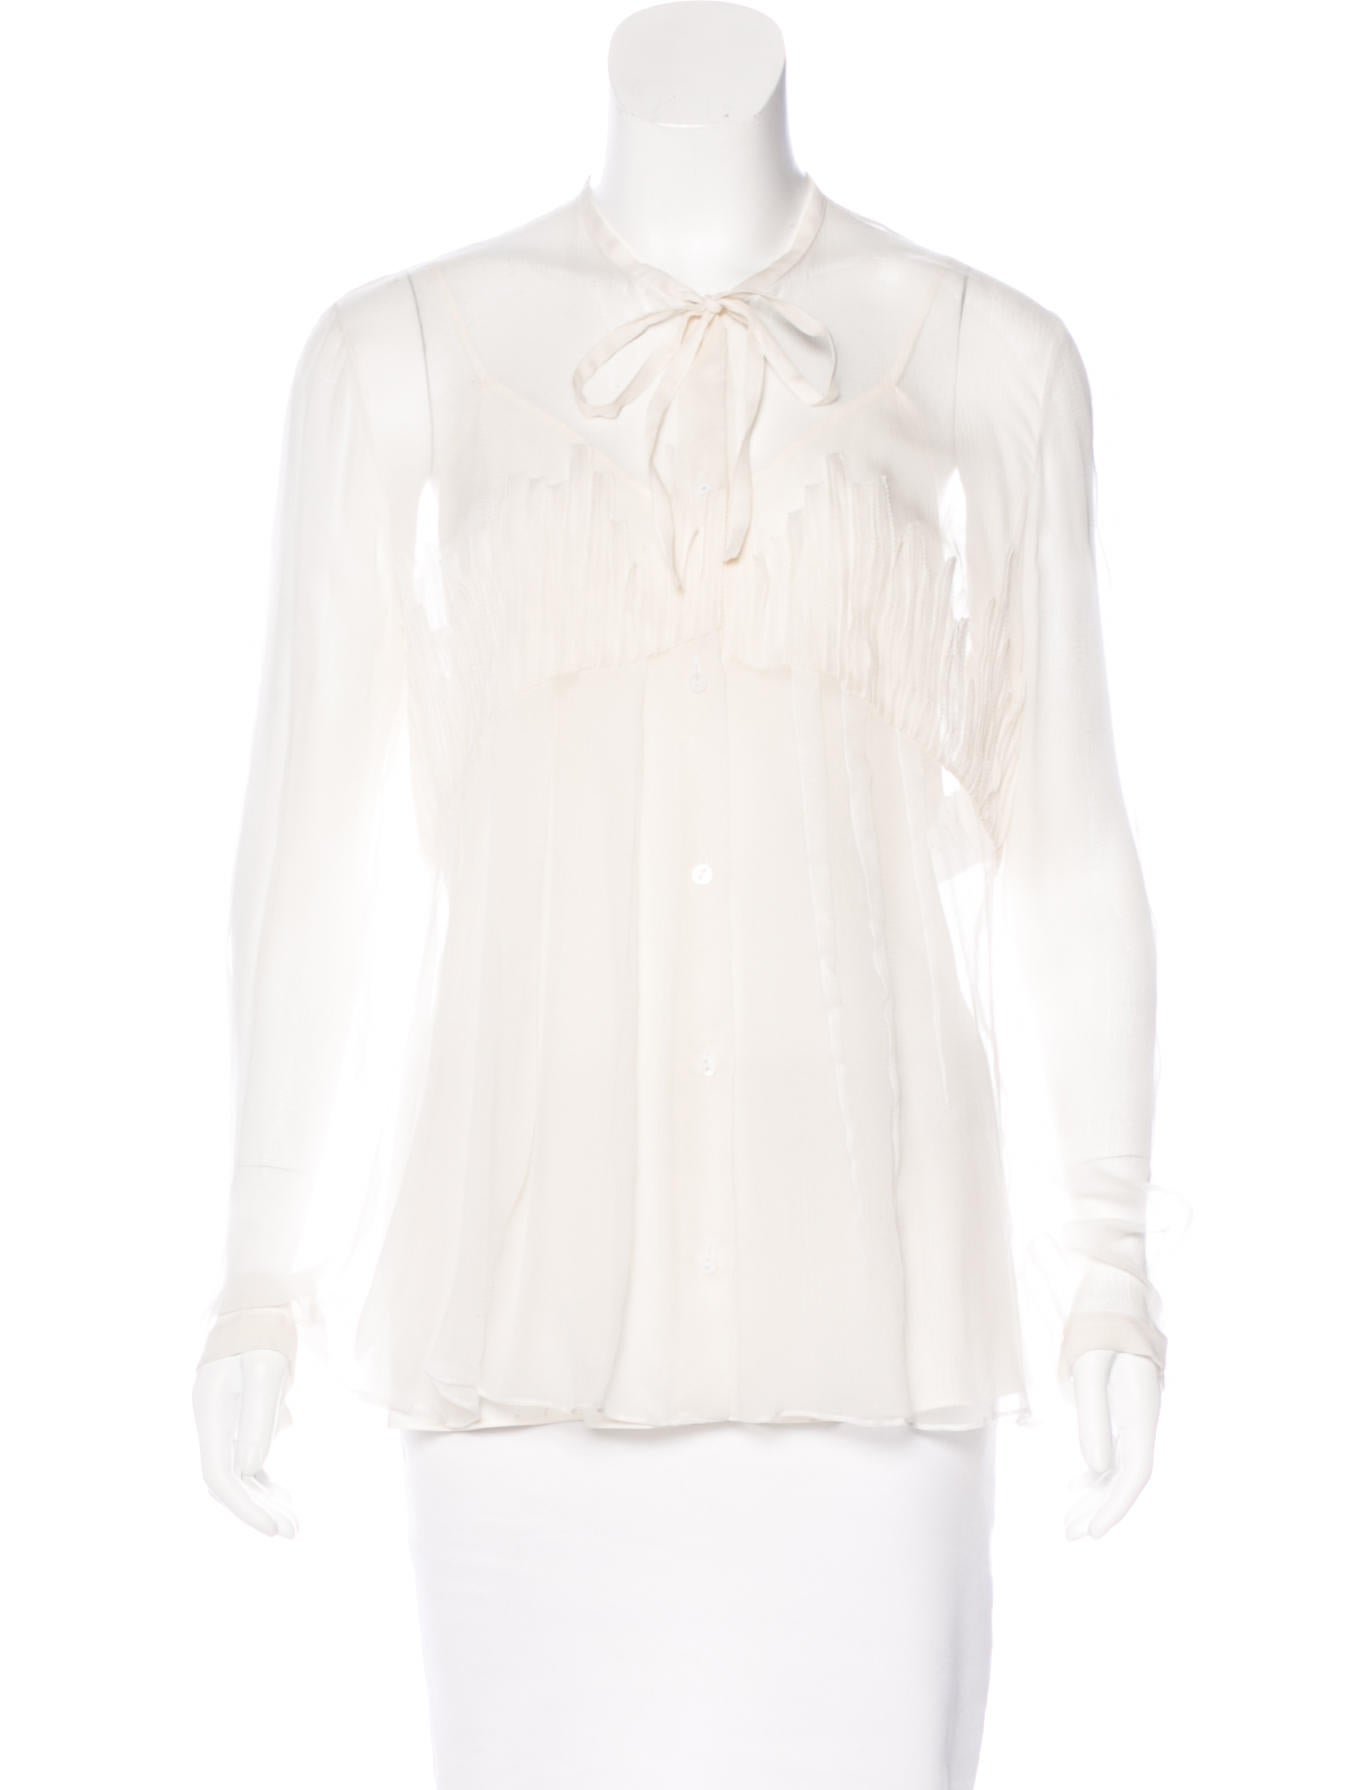 Christian dior silk button up top clothing chr55752 for Christian dior button up shirt